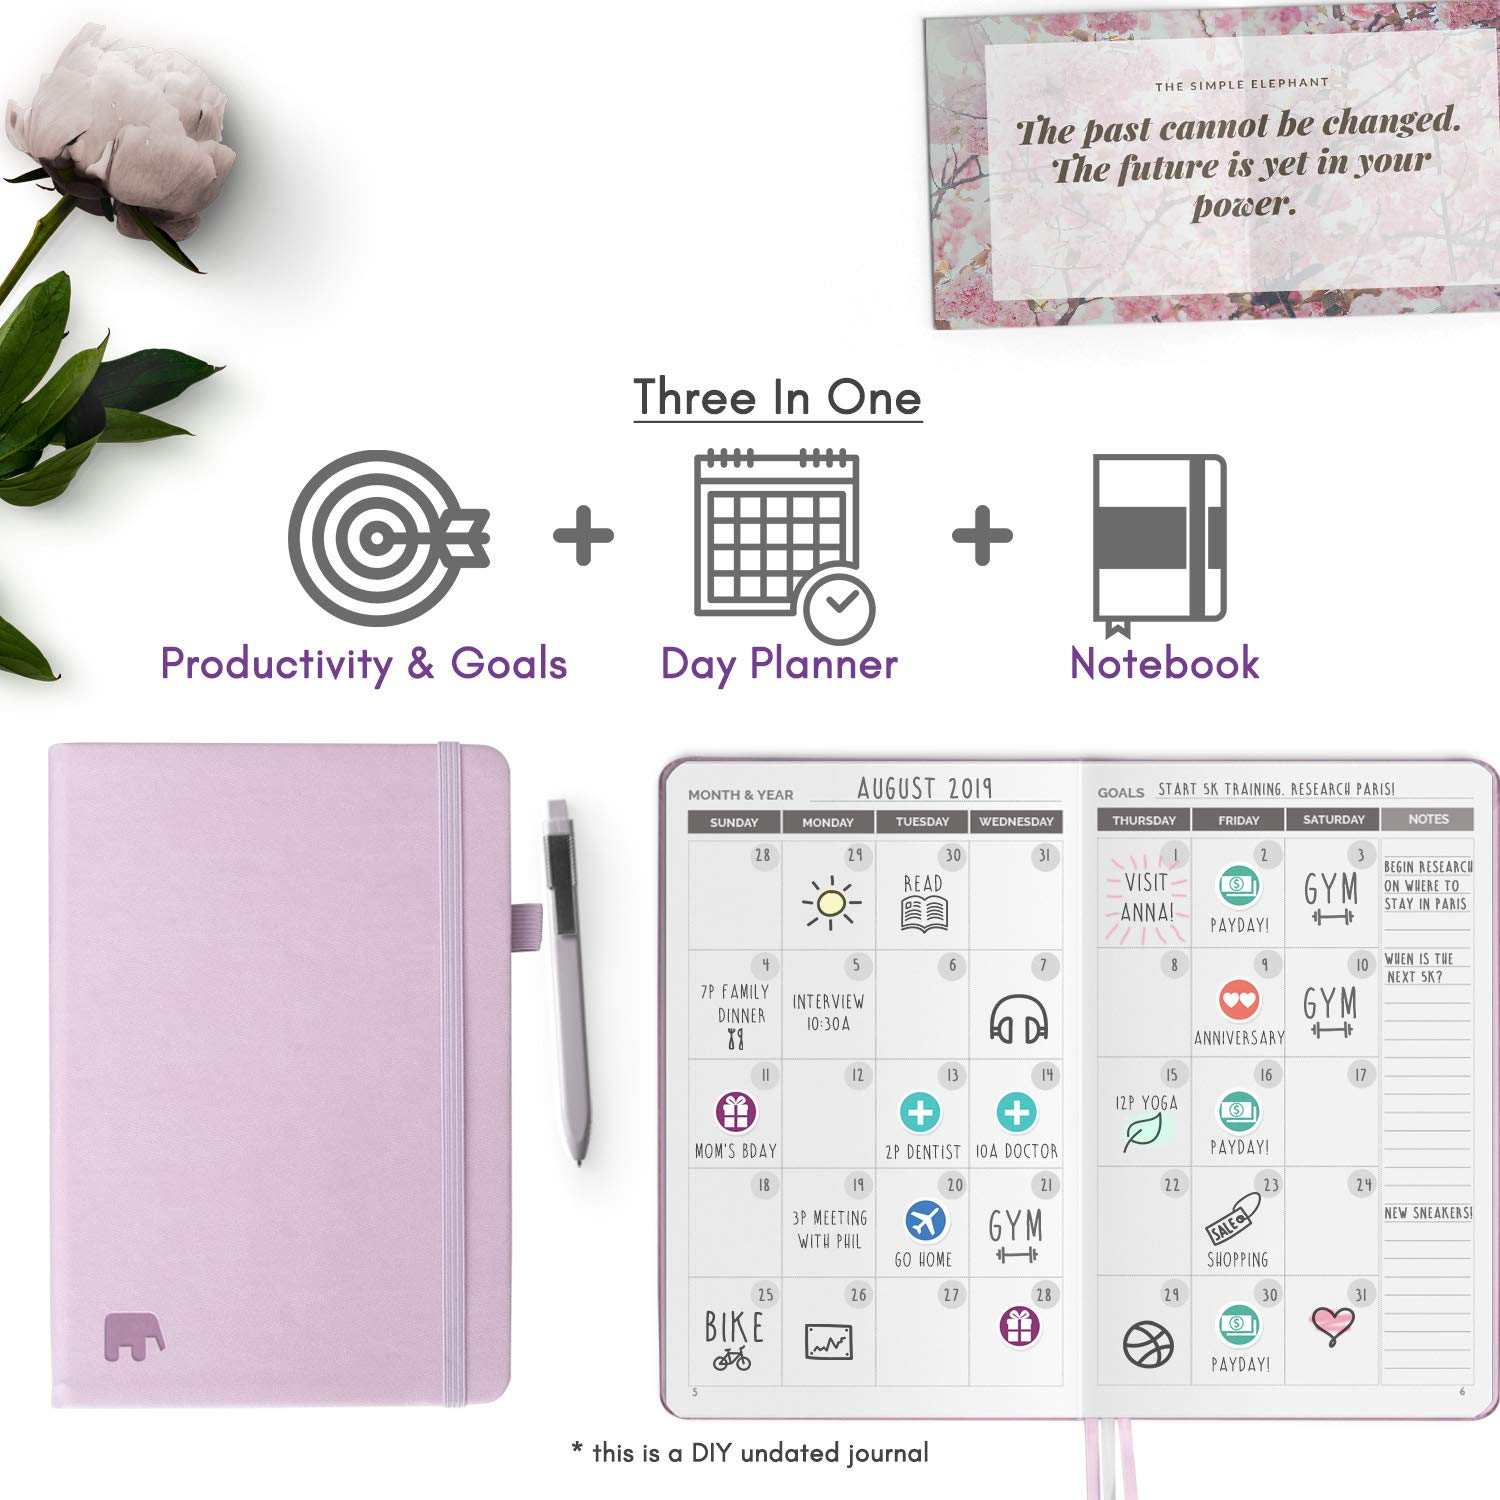 Simple Elephant Planner 2020 - Daily, Weekly, Monthly Agenda - Undated Productivity Journal - Gratitude, Life & Goal, Success (Lilac)